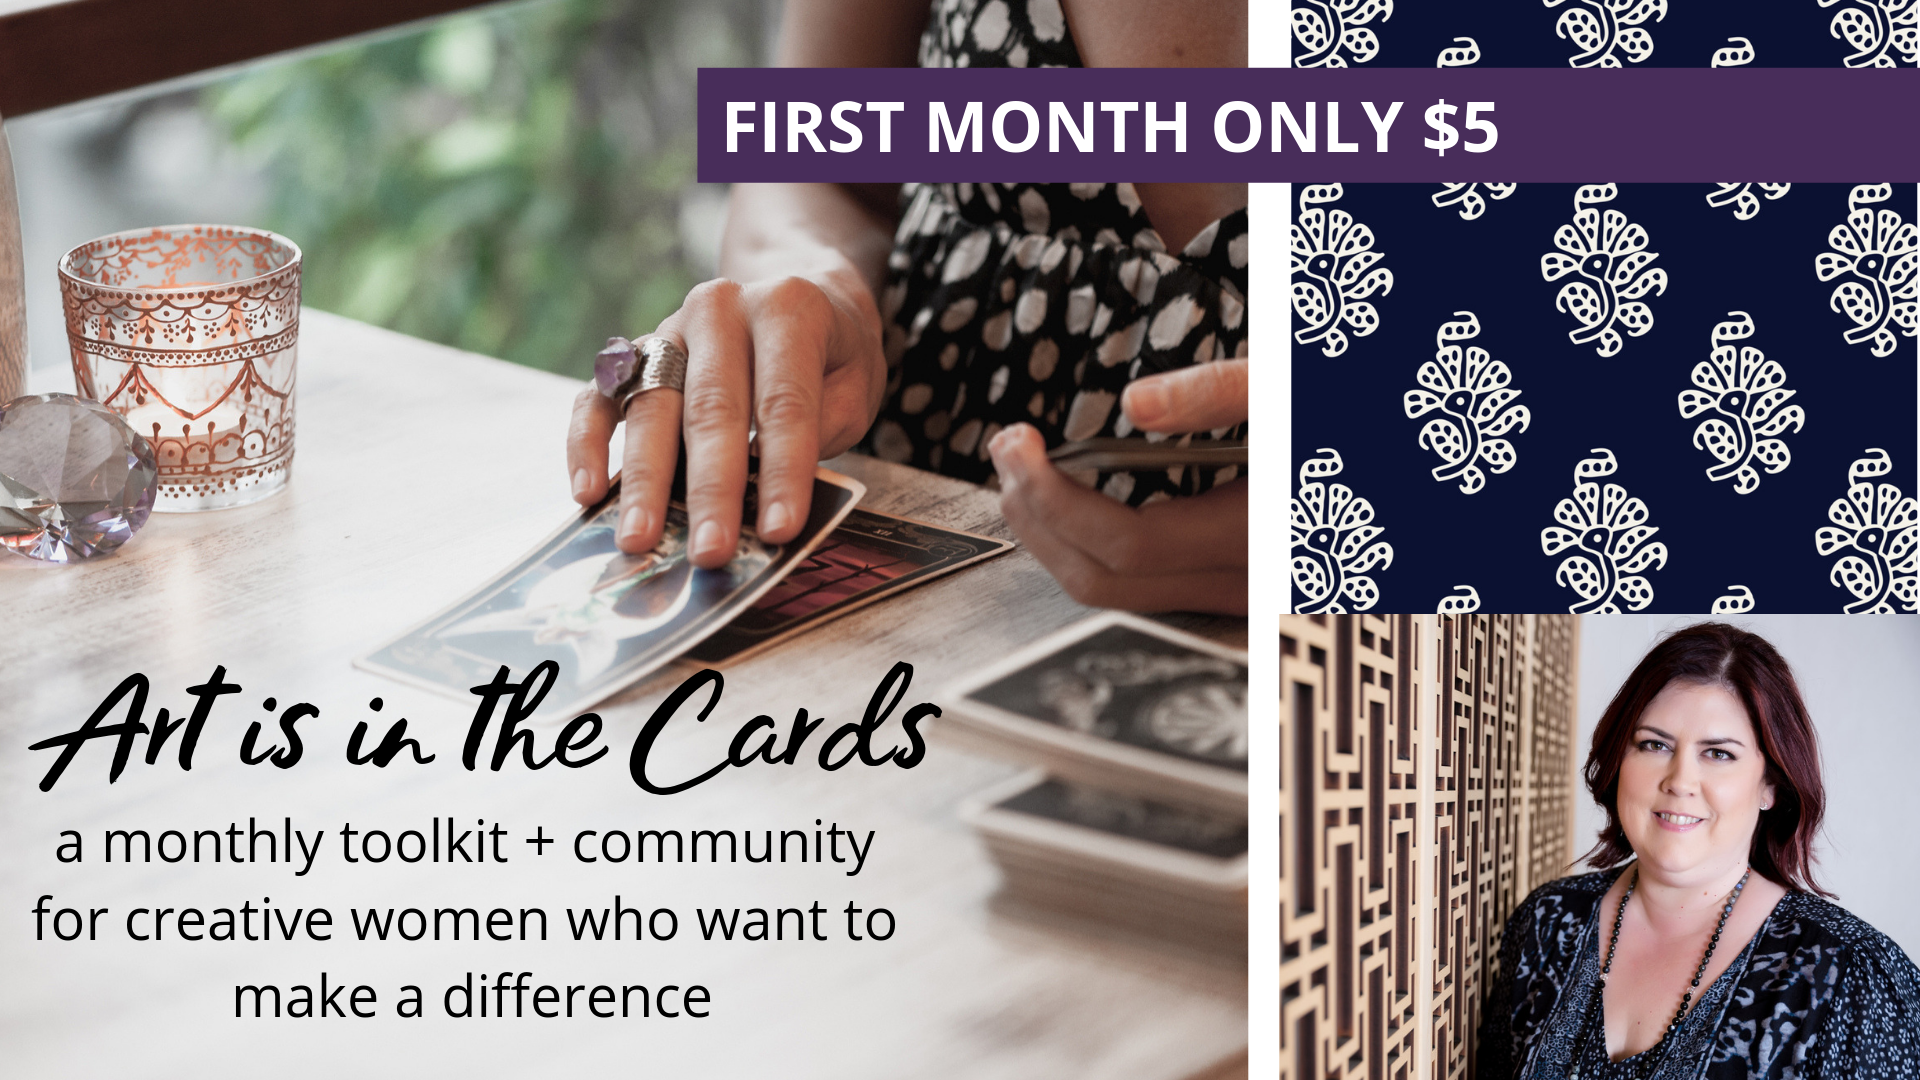 Art is in the Cards Toolkit and Membership